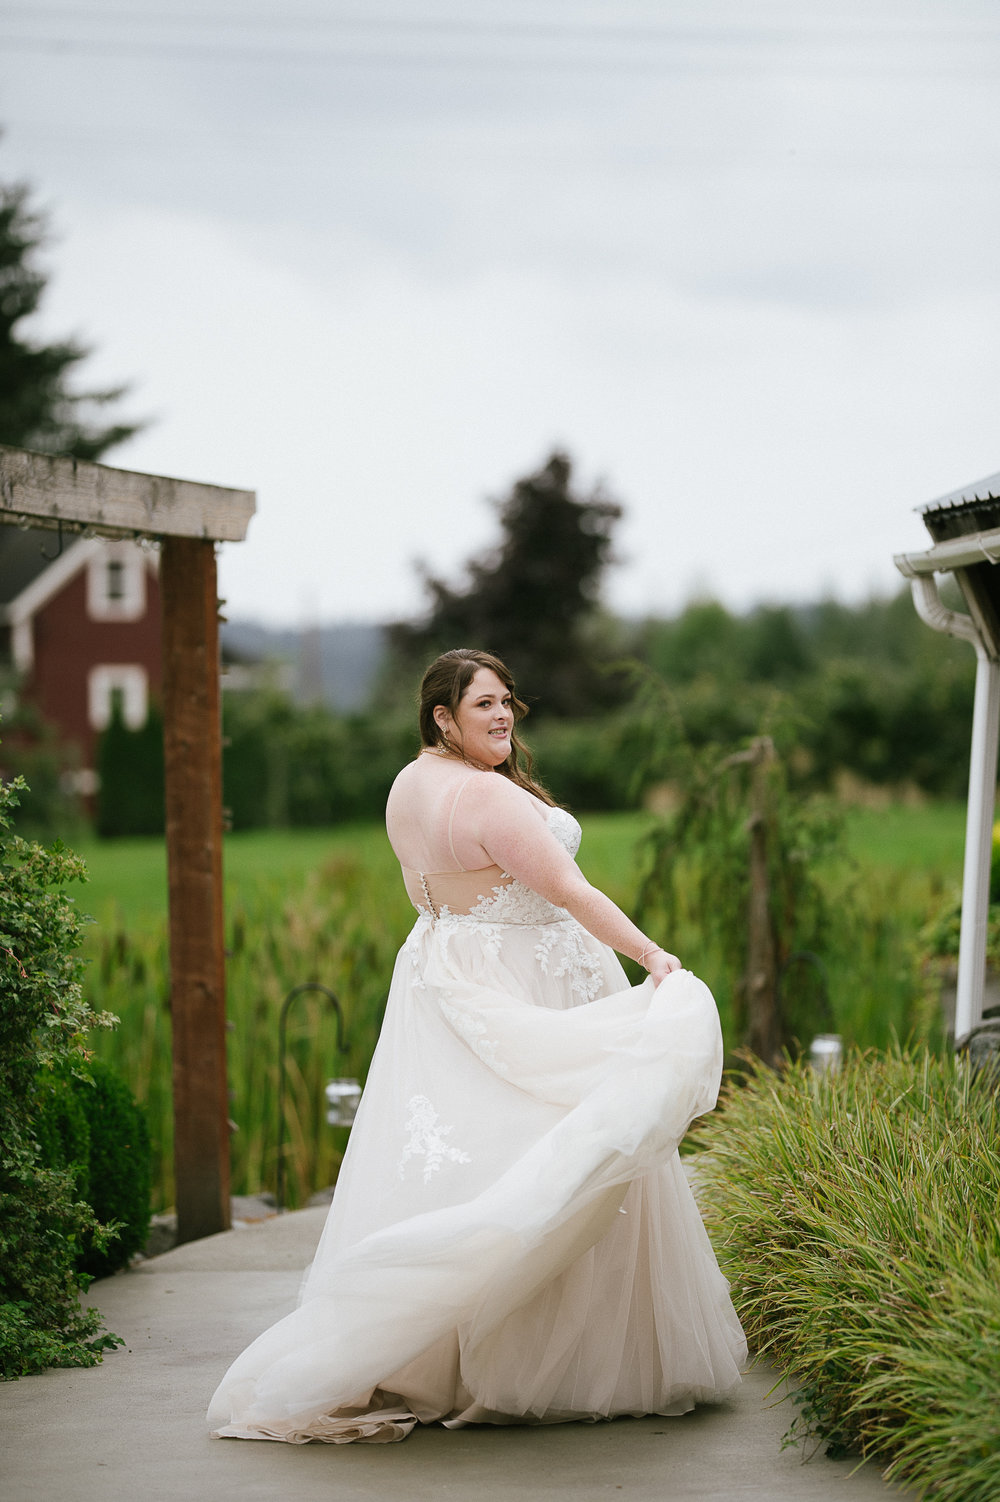 Swan Trail Farm Wedding_Sarah Schurman + Brian Skadan_Snohomish Wedding_Kelsey Lane Photography-5672.jpg